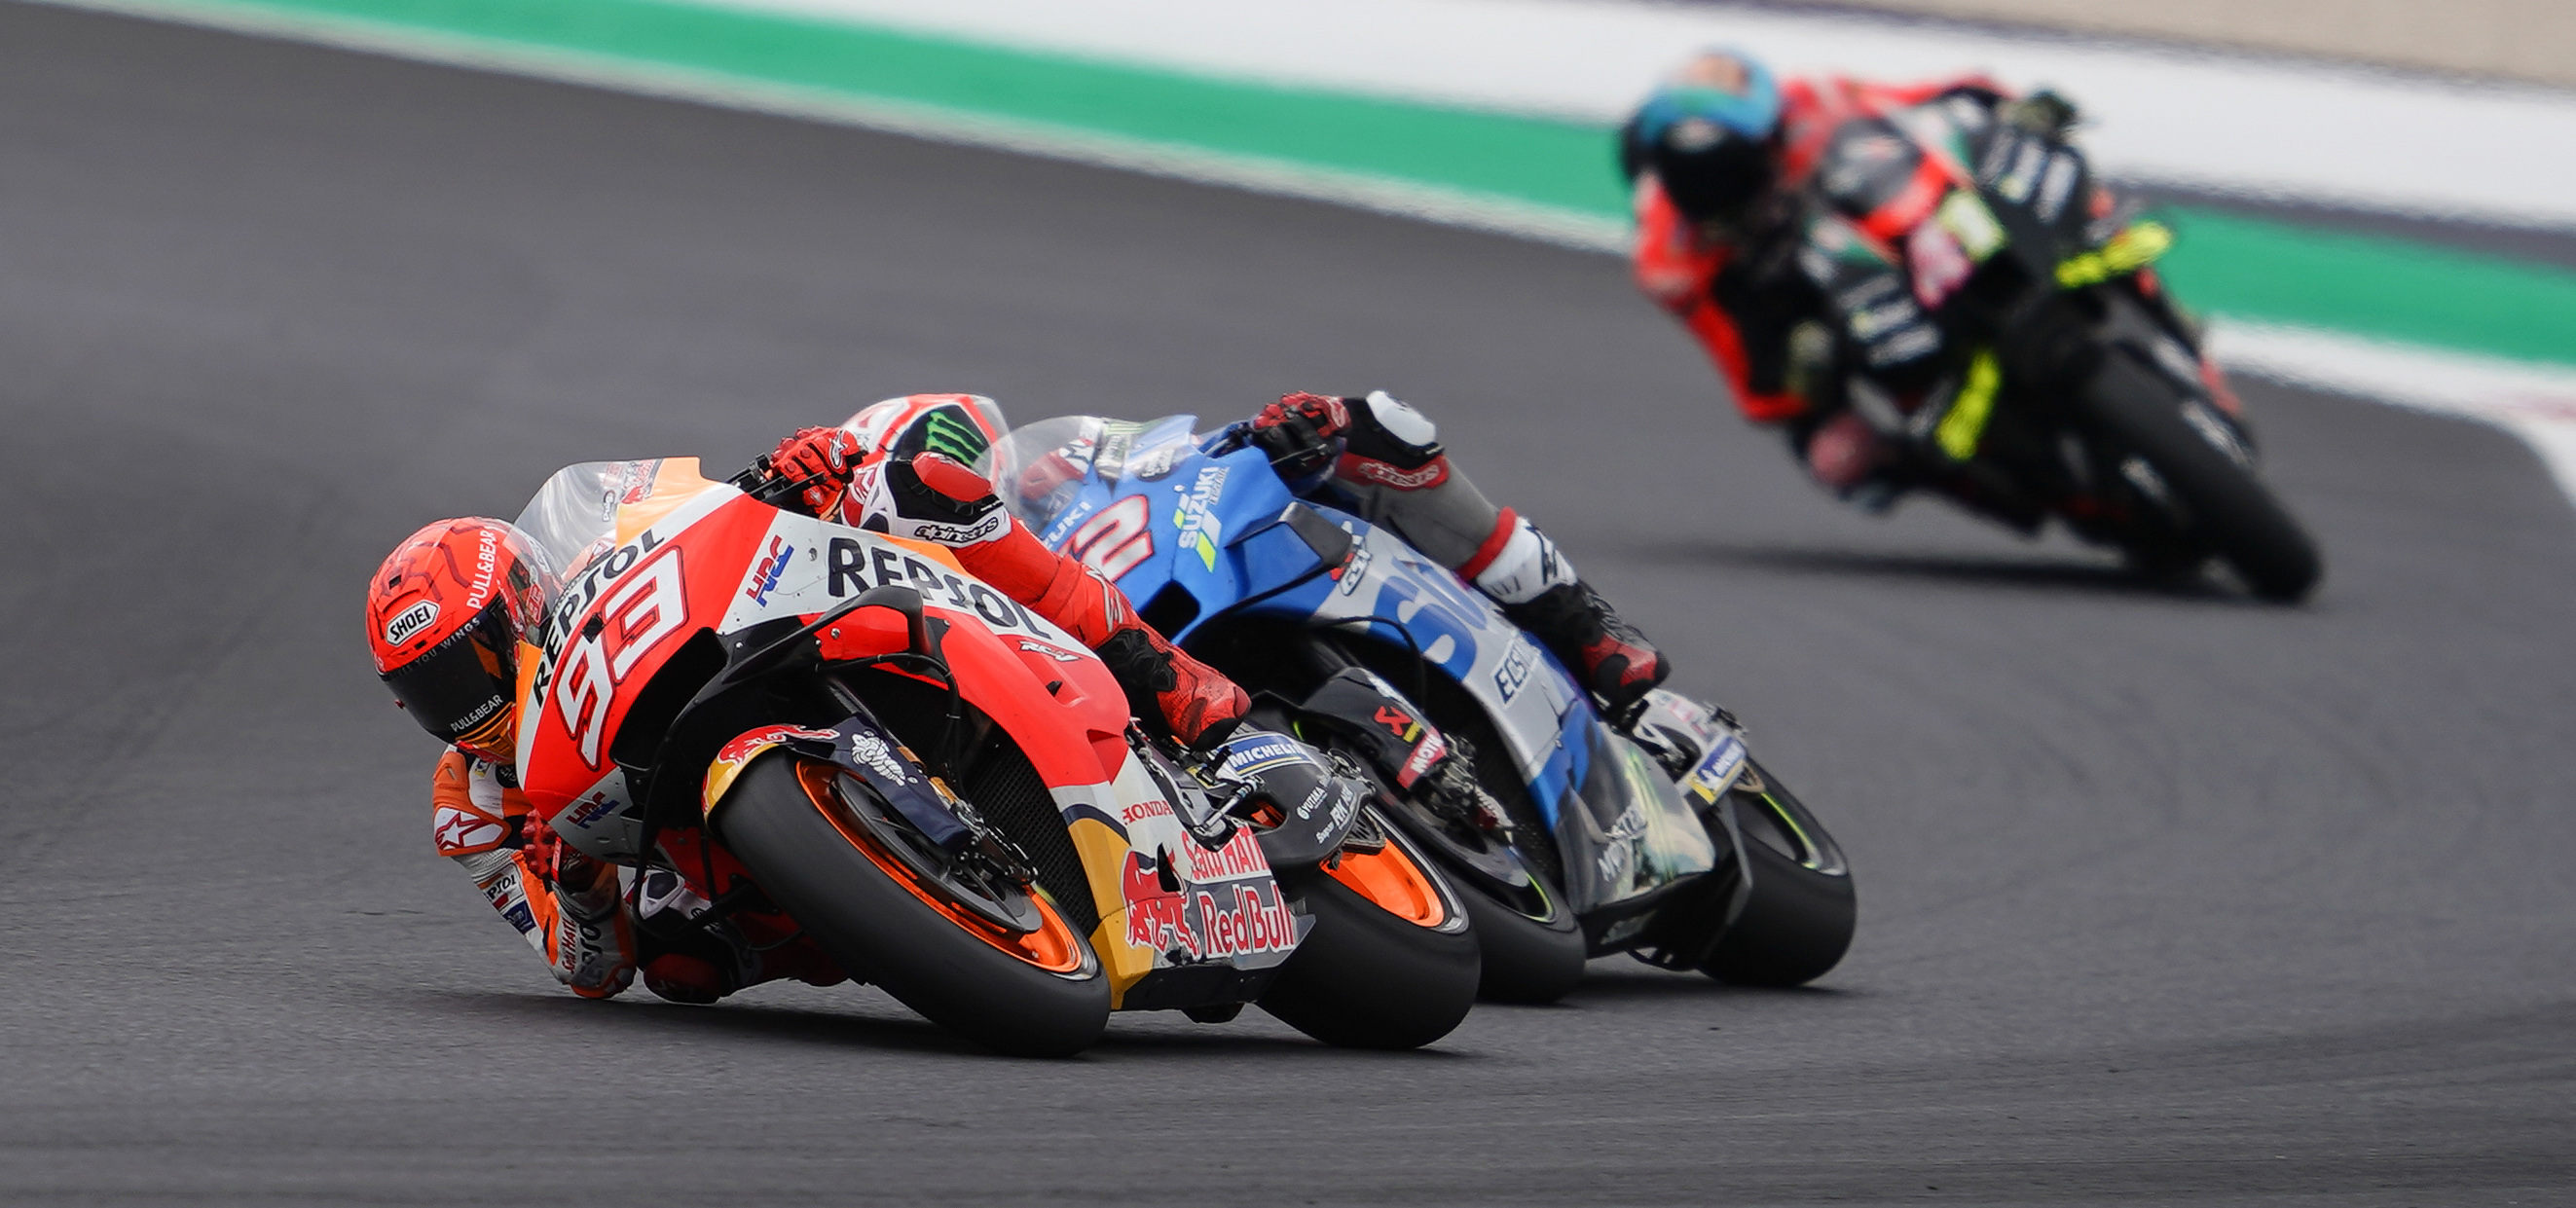 Marc Márquez finishes fourth at Misano